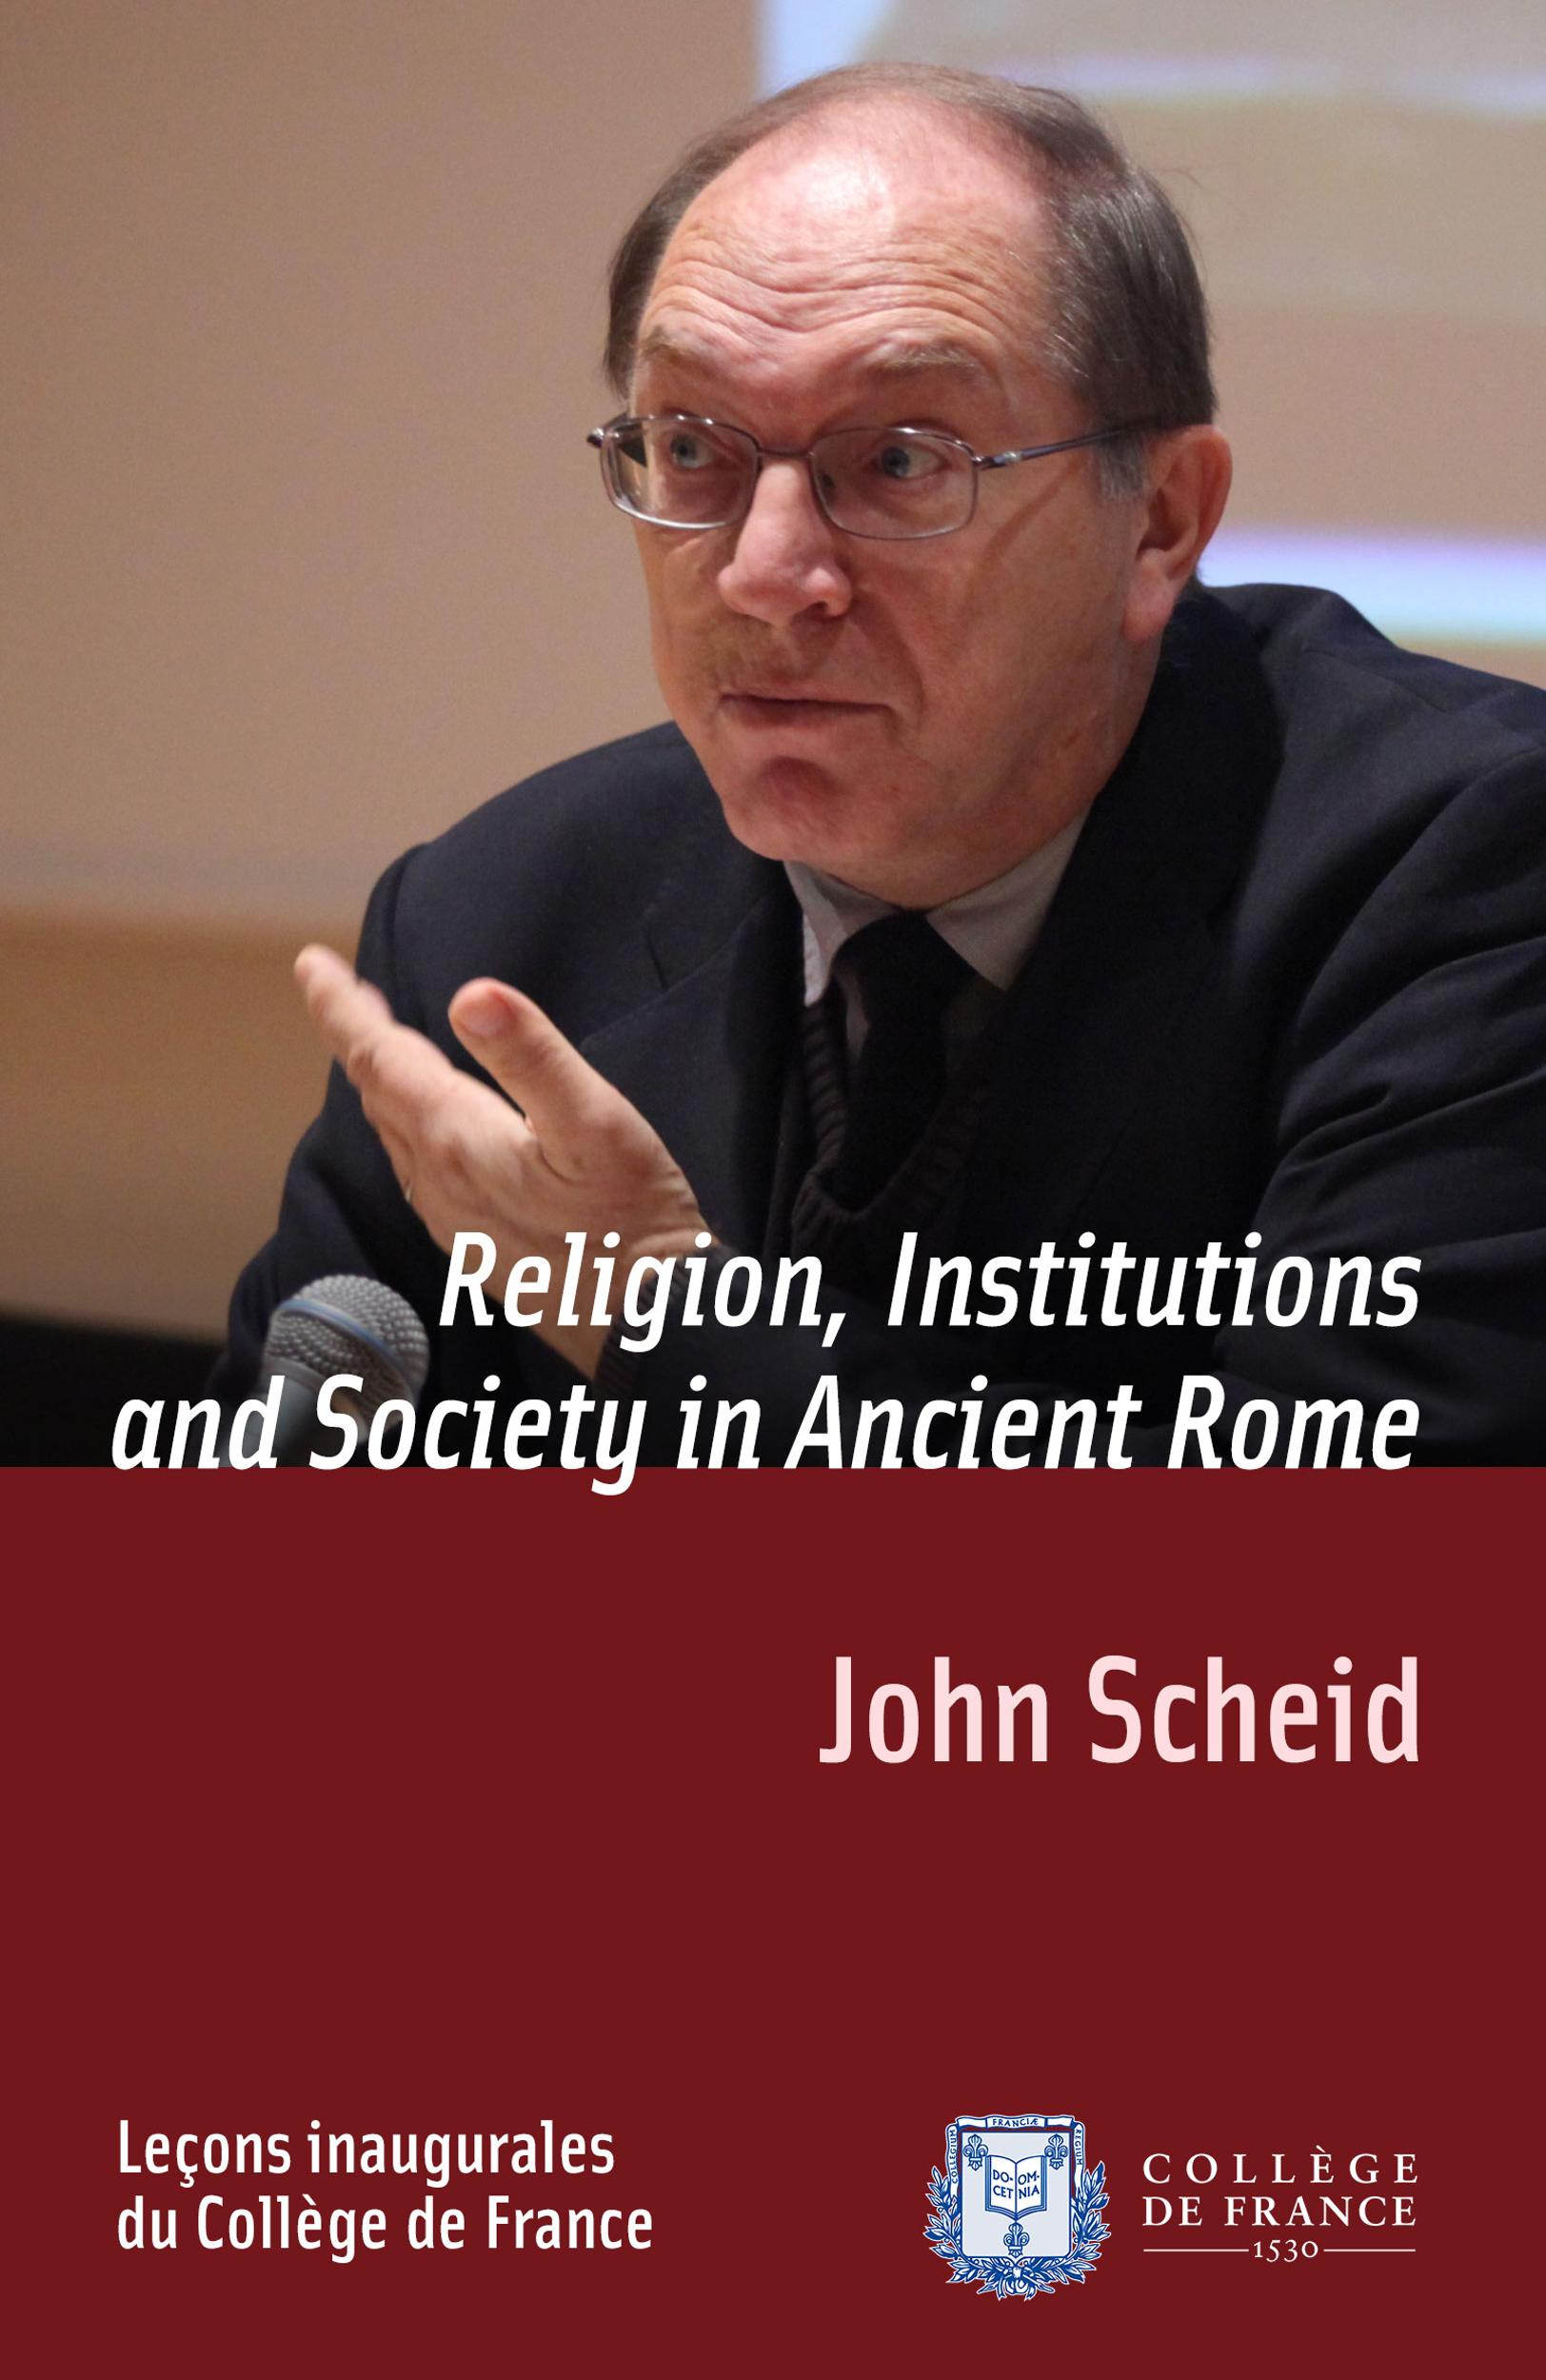 Religion, Institutions and Society in Ancient Rome, INAUGURAL LECTURE DELIVERED ON THURSDAY 7FEBRUARY2002